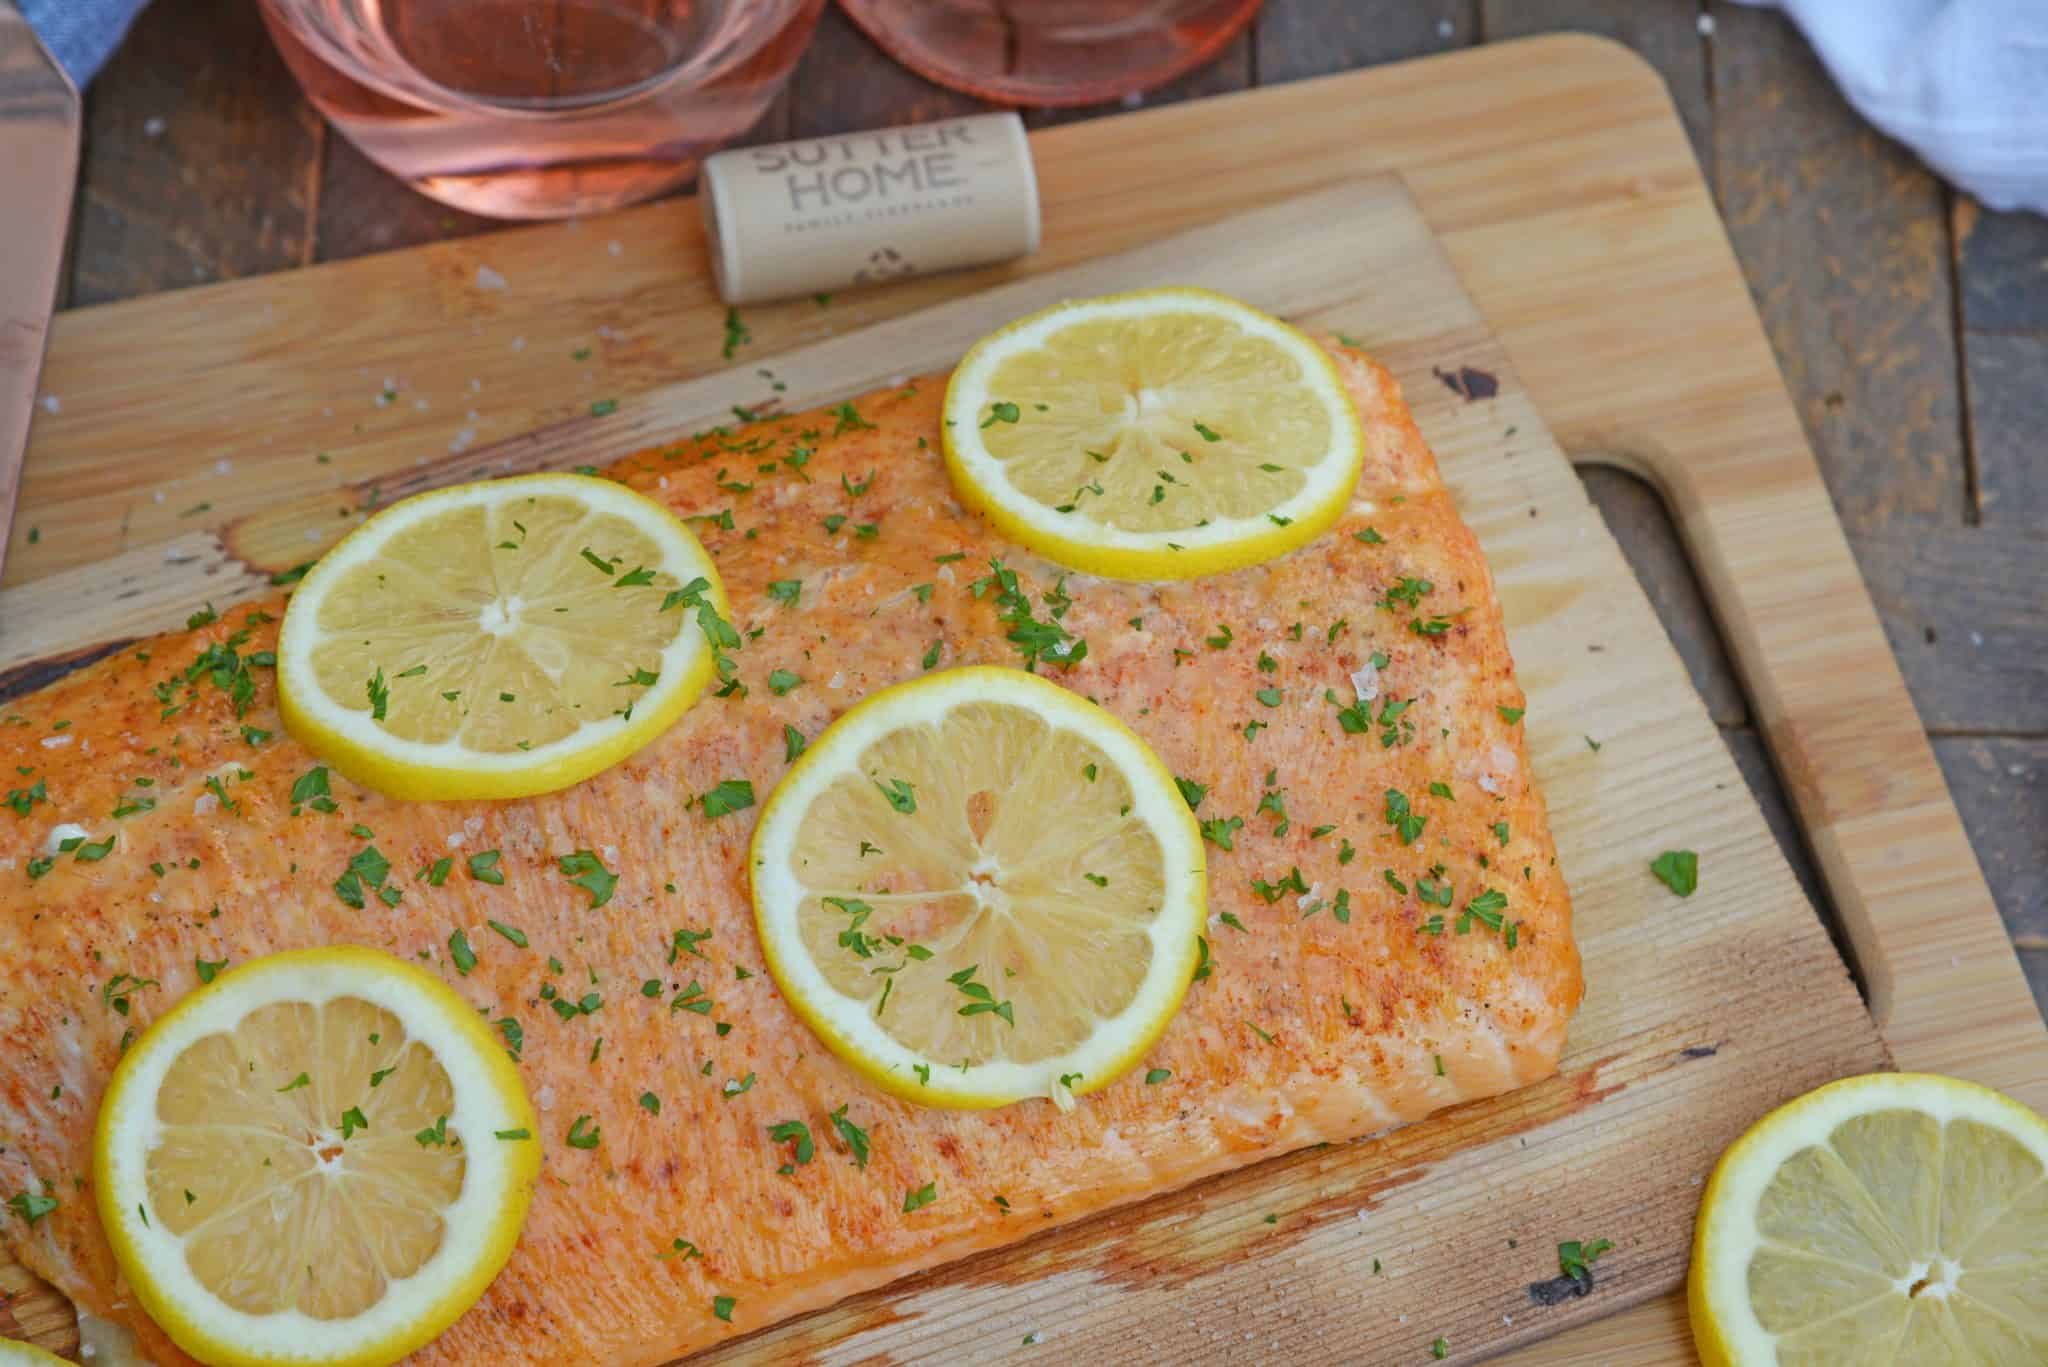 Spicy Cedar Plank Salmon is an easy grilled salmon recipe using a spicy salmon glaze. Perfect for a hot summer night and pairing with a crisp, sweet wine. #cedarplanksalmon #salmononthegrill #spicysalmon www.savoryexperiments.com